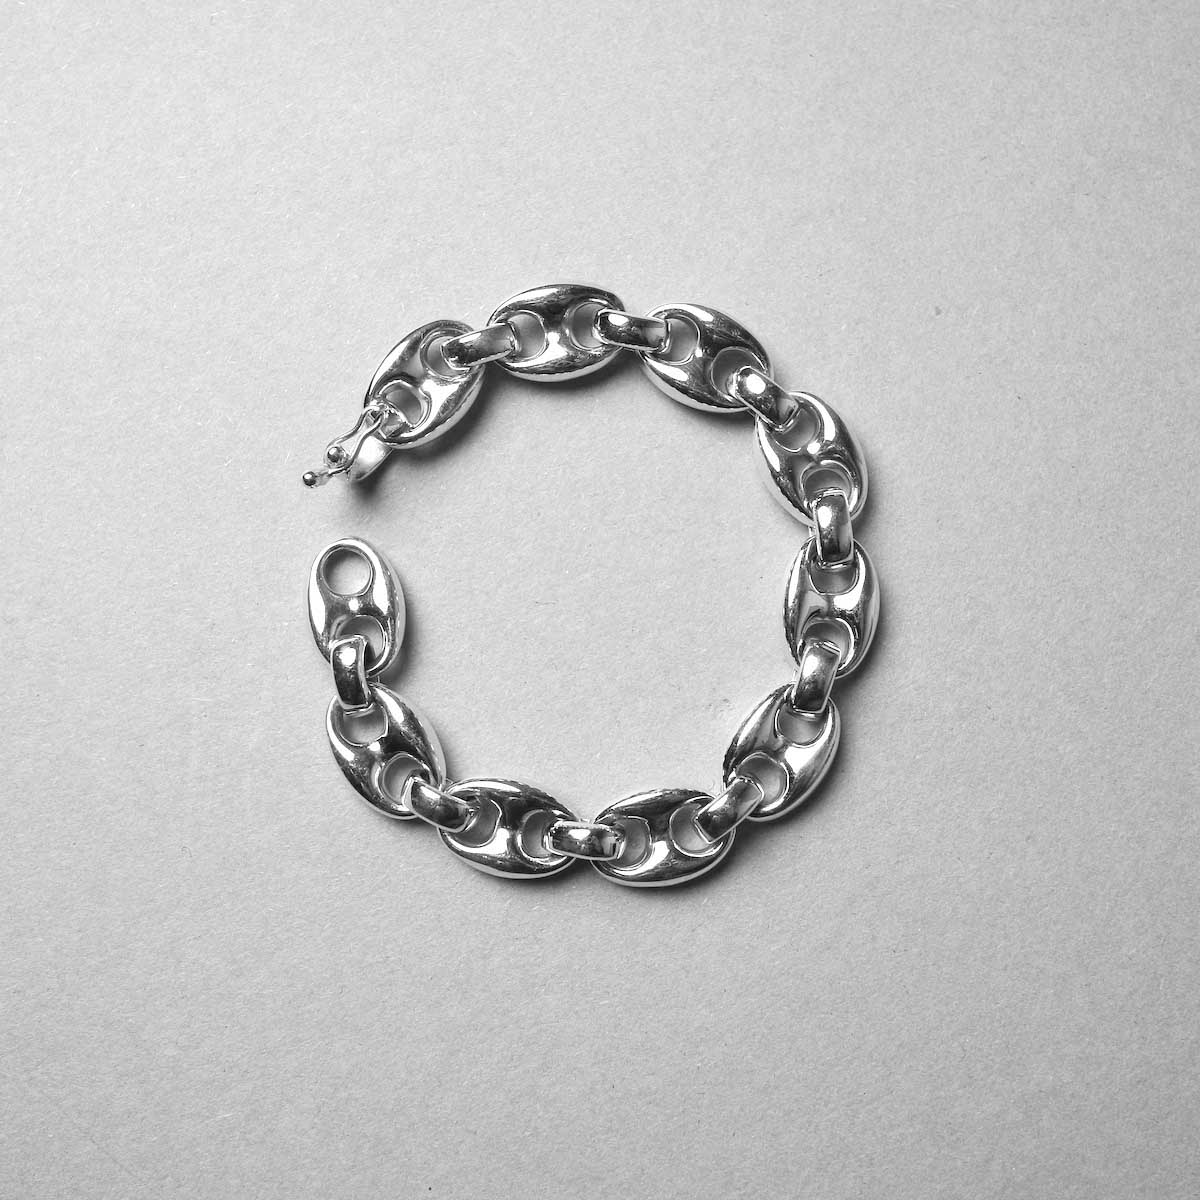 FIFTH GENERAL STORE / Special-003 Silver Chain Bracelet (11mm)